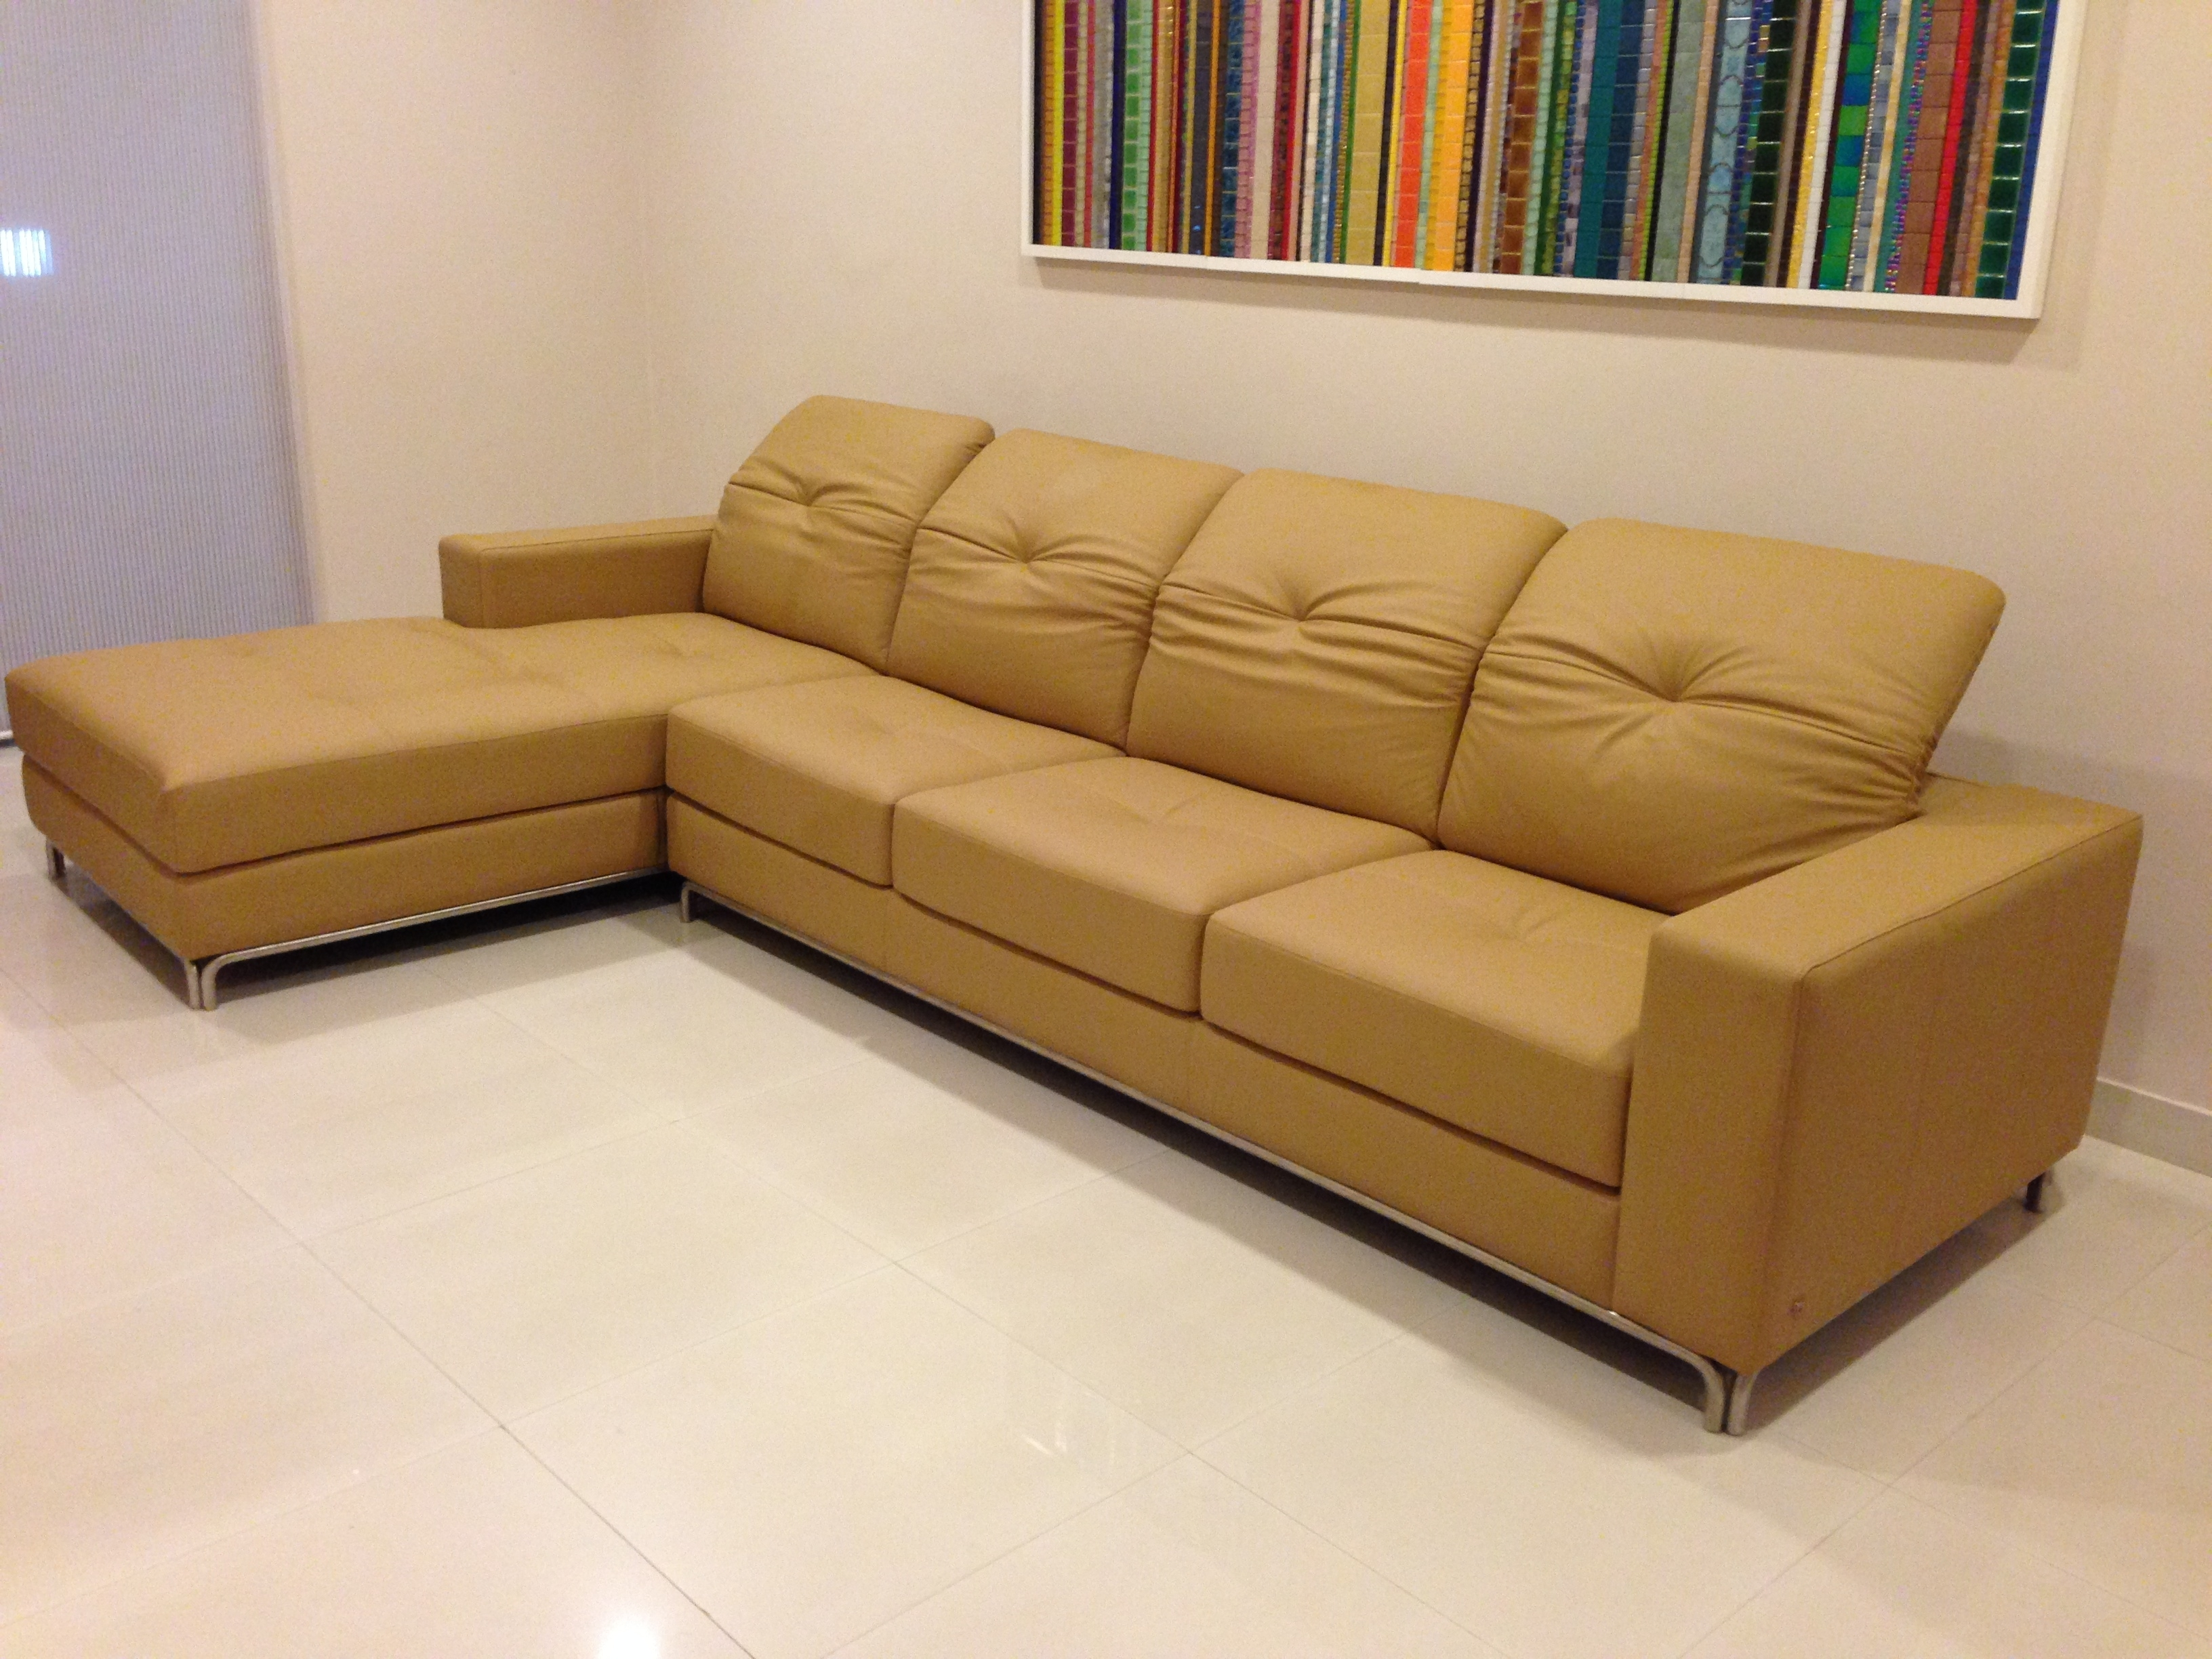 Karlsson Leather: Custom Leather Sofas, Recliners, Car Seat Covers Inside Sectional Sofas At Bangalore (View 2 of 10)